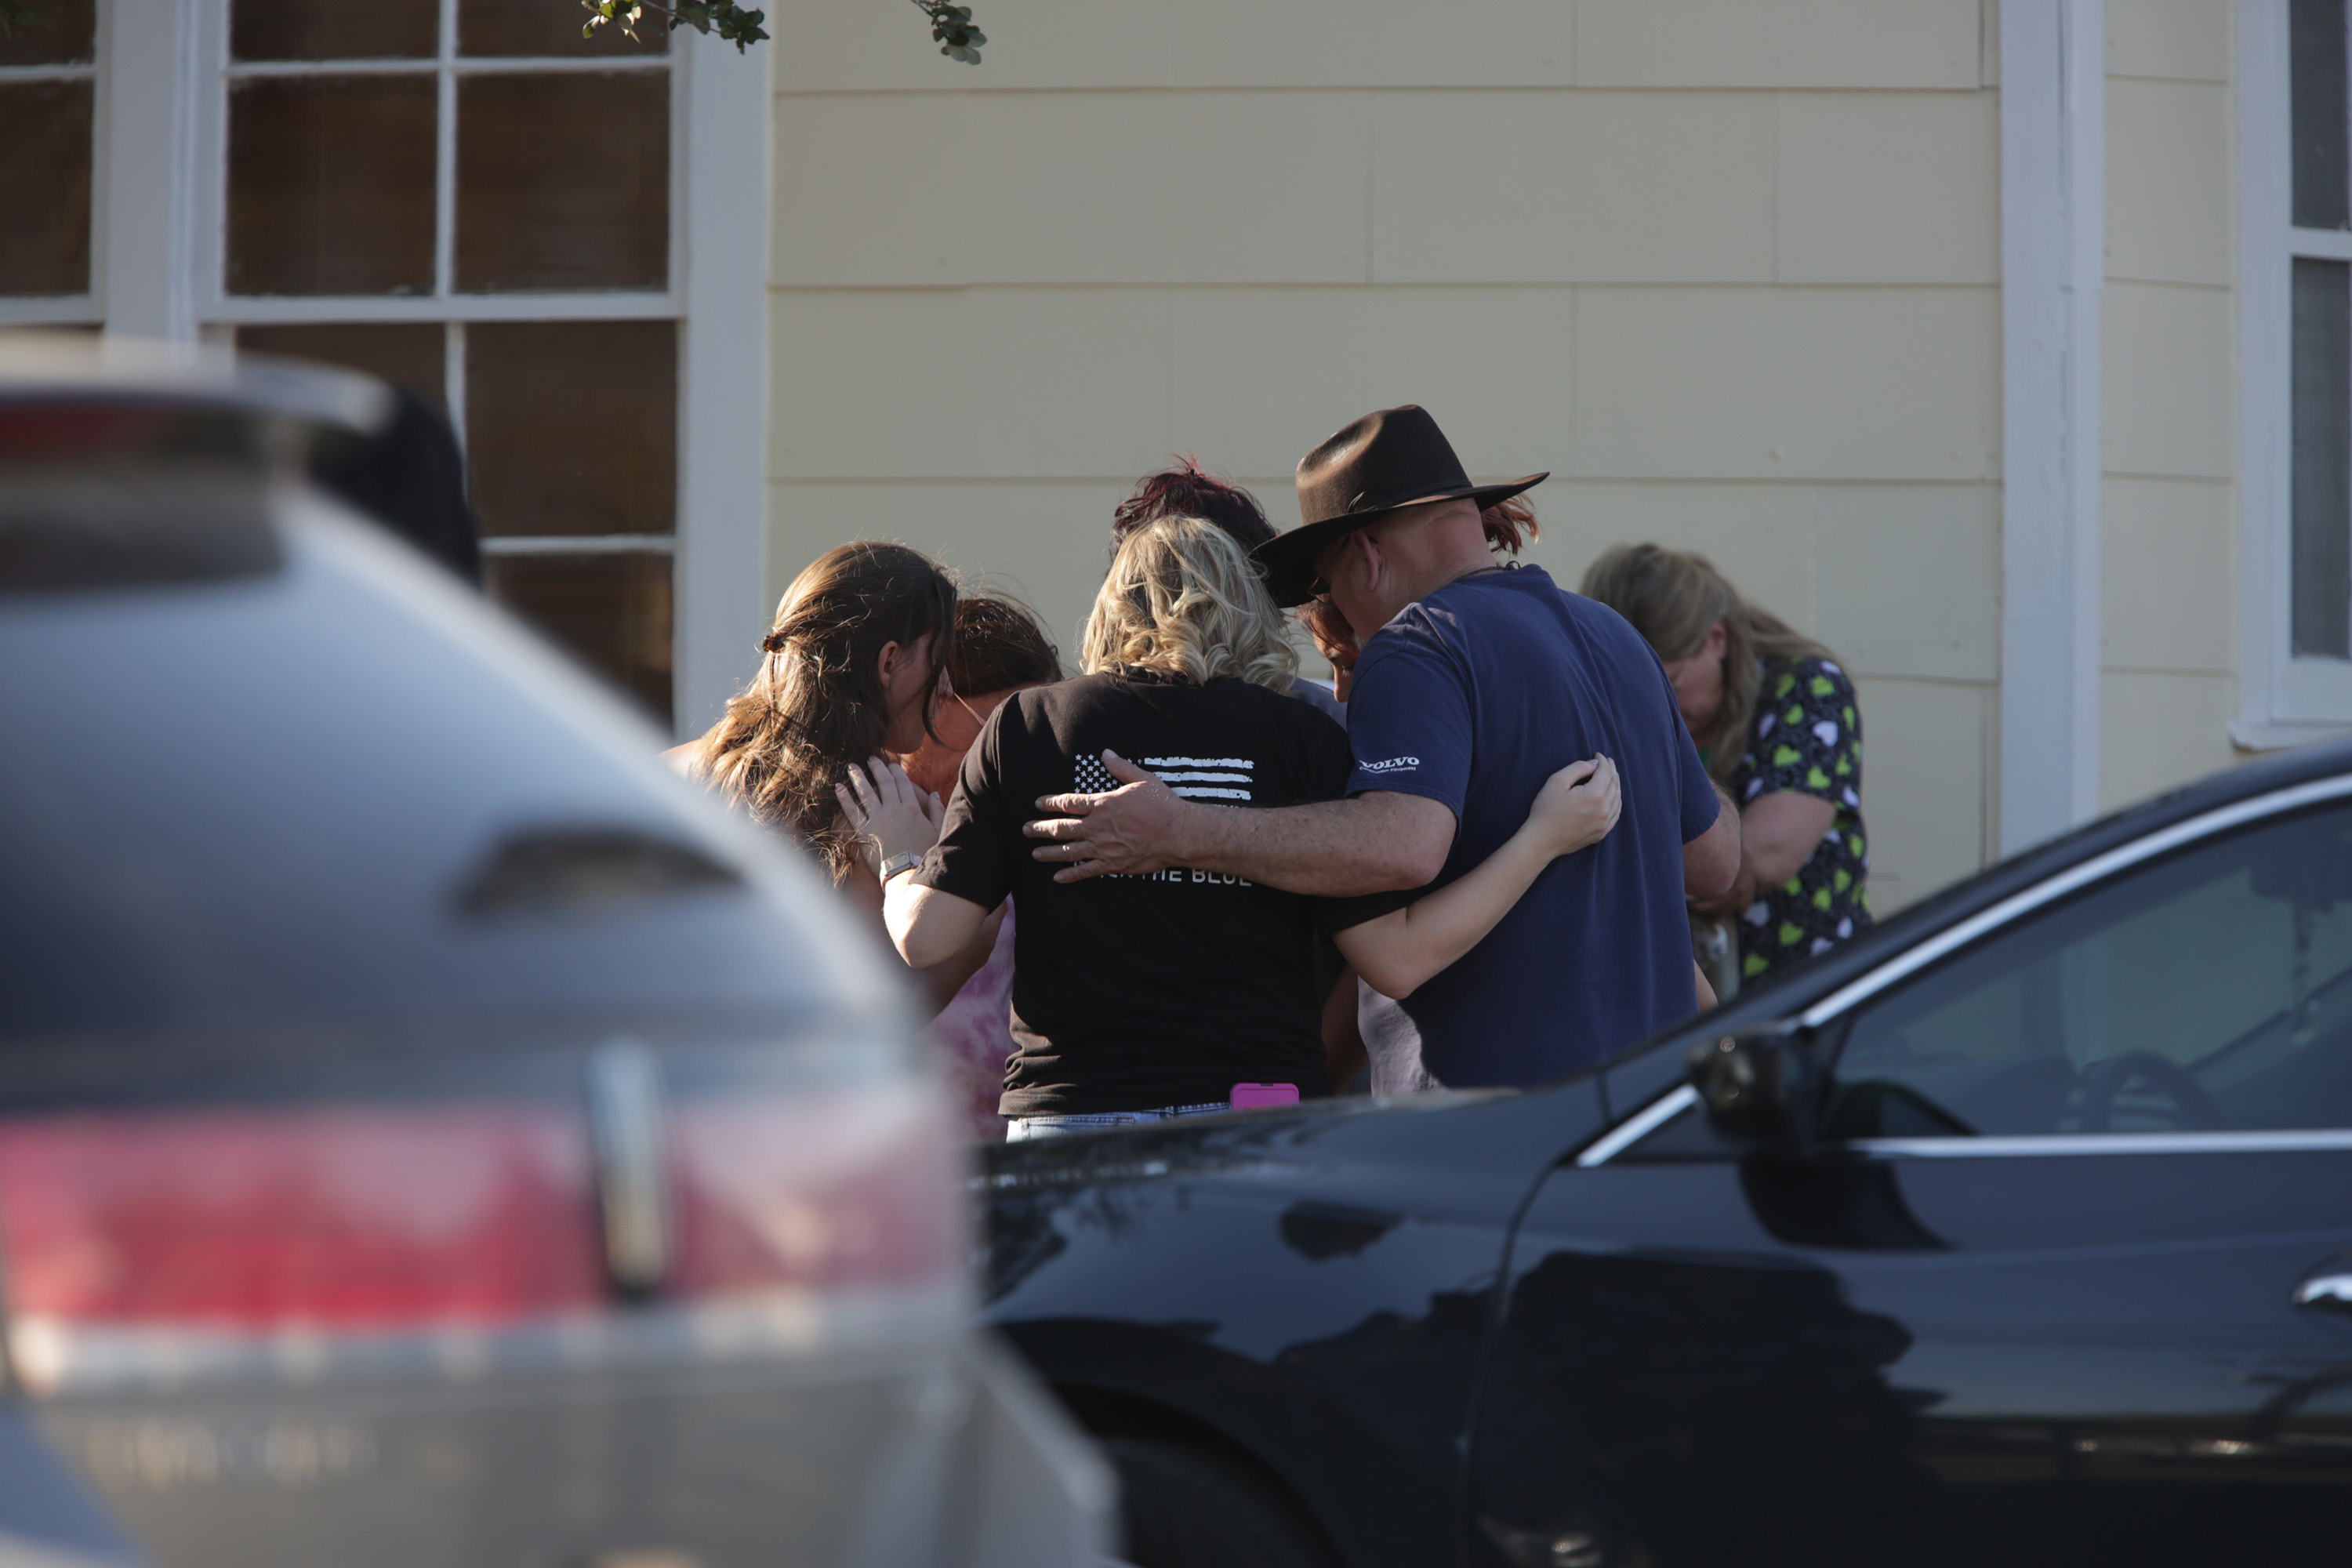 'They're all shot': One Texas family loses 3 members in church shooting Featured